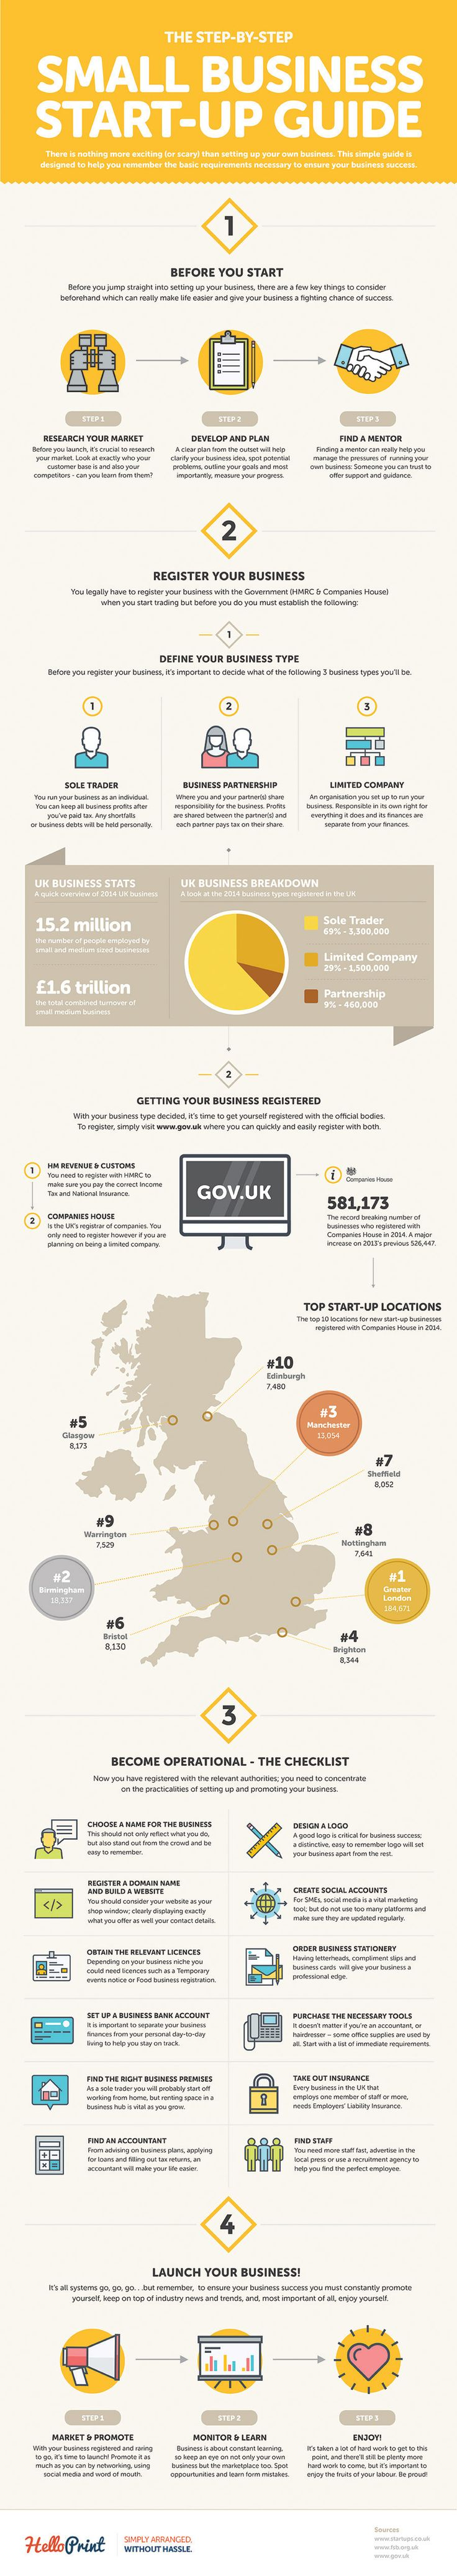 UK Small Business Startup Guide for Noobs Like us (Infographic) http://www.joesdata.com/